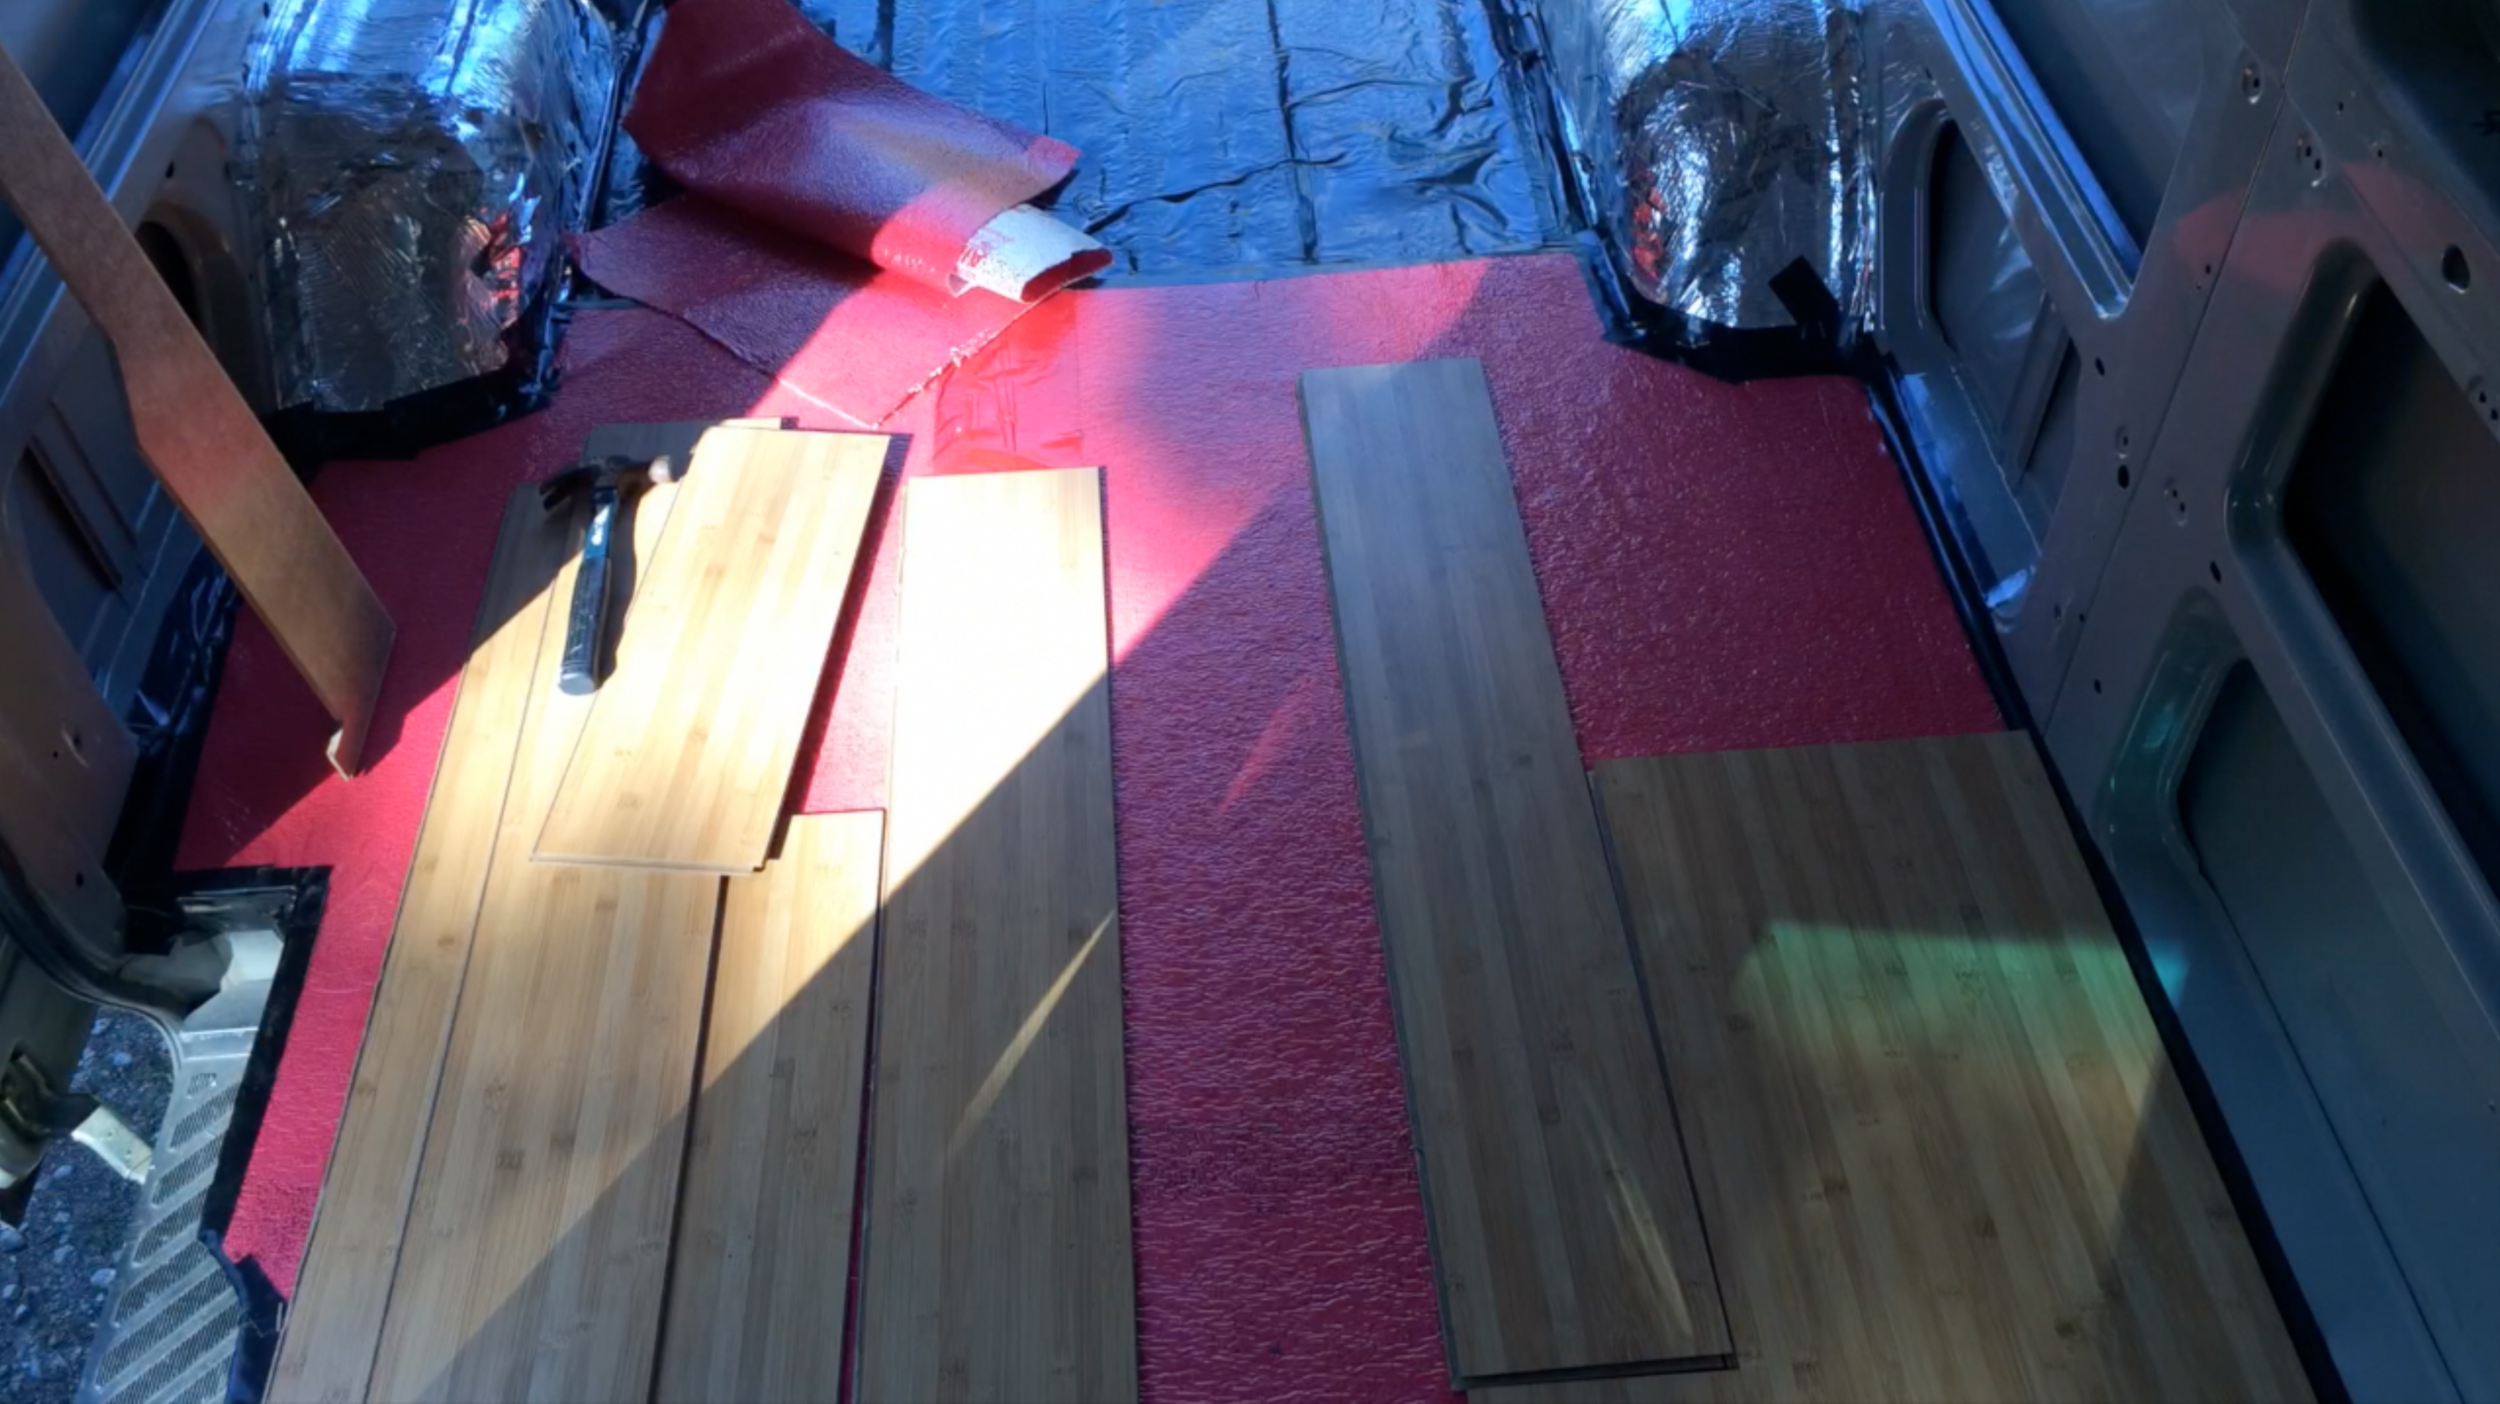 Subflooring in process of being installed